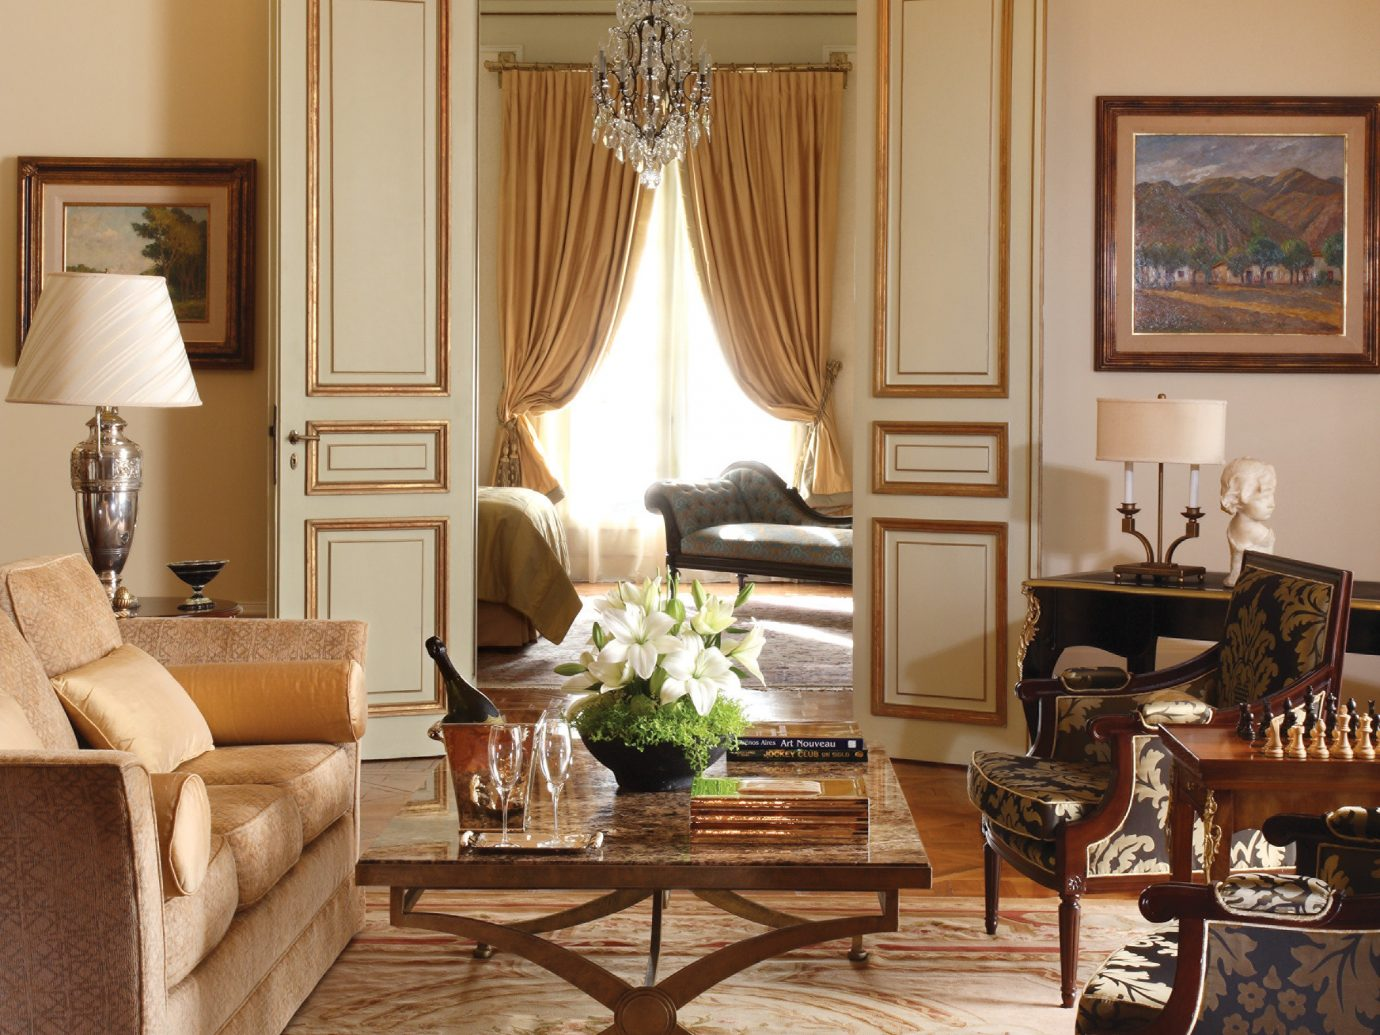 Elegant Historic Hotels Living Lounge Luxury Romance Trip Ideas indoor room wall floor dining room living room property furniture home interior design hardwood estate wood window covering cottage real estate window treatment window decorated several